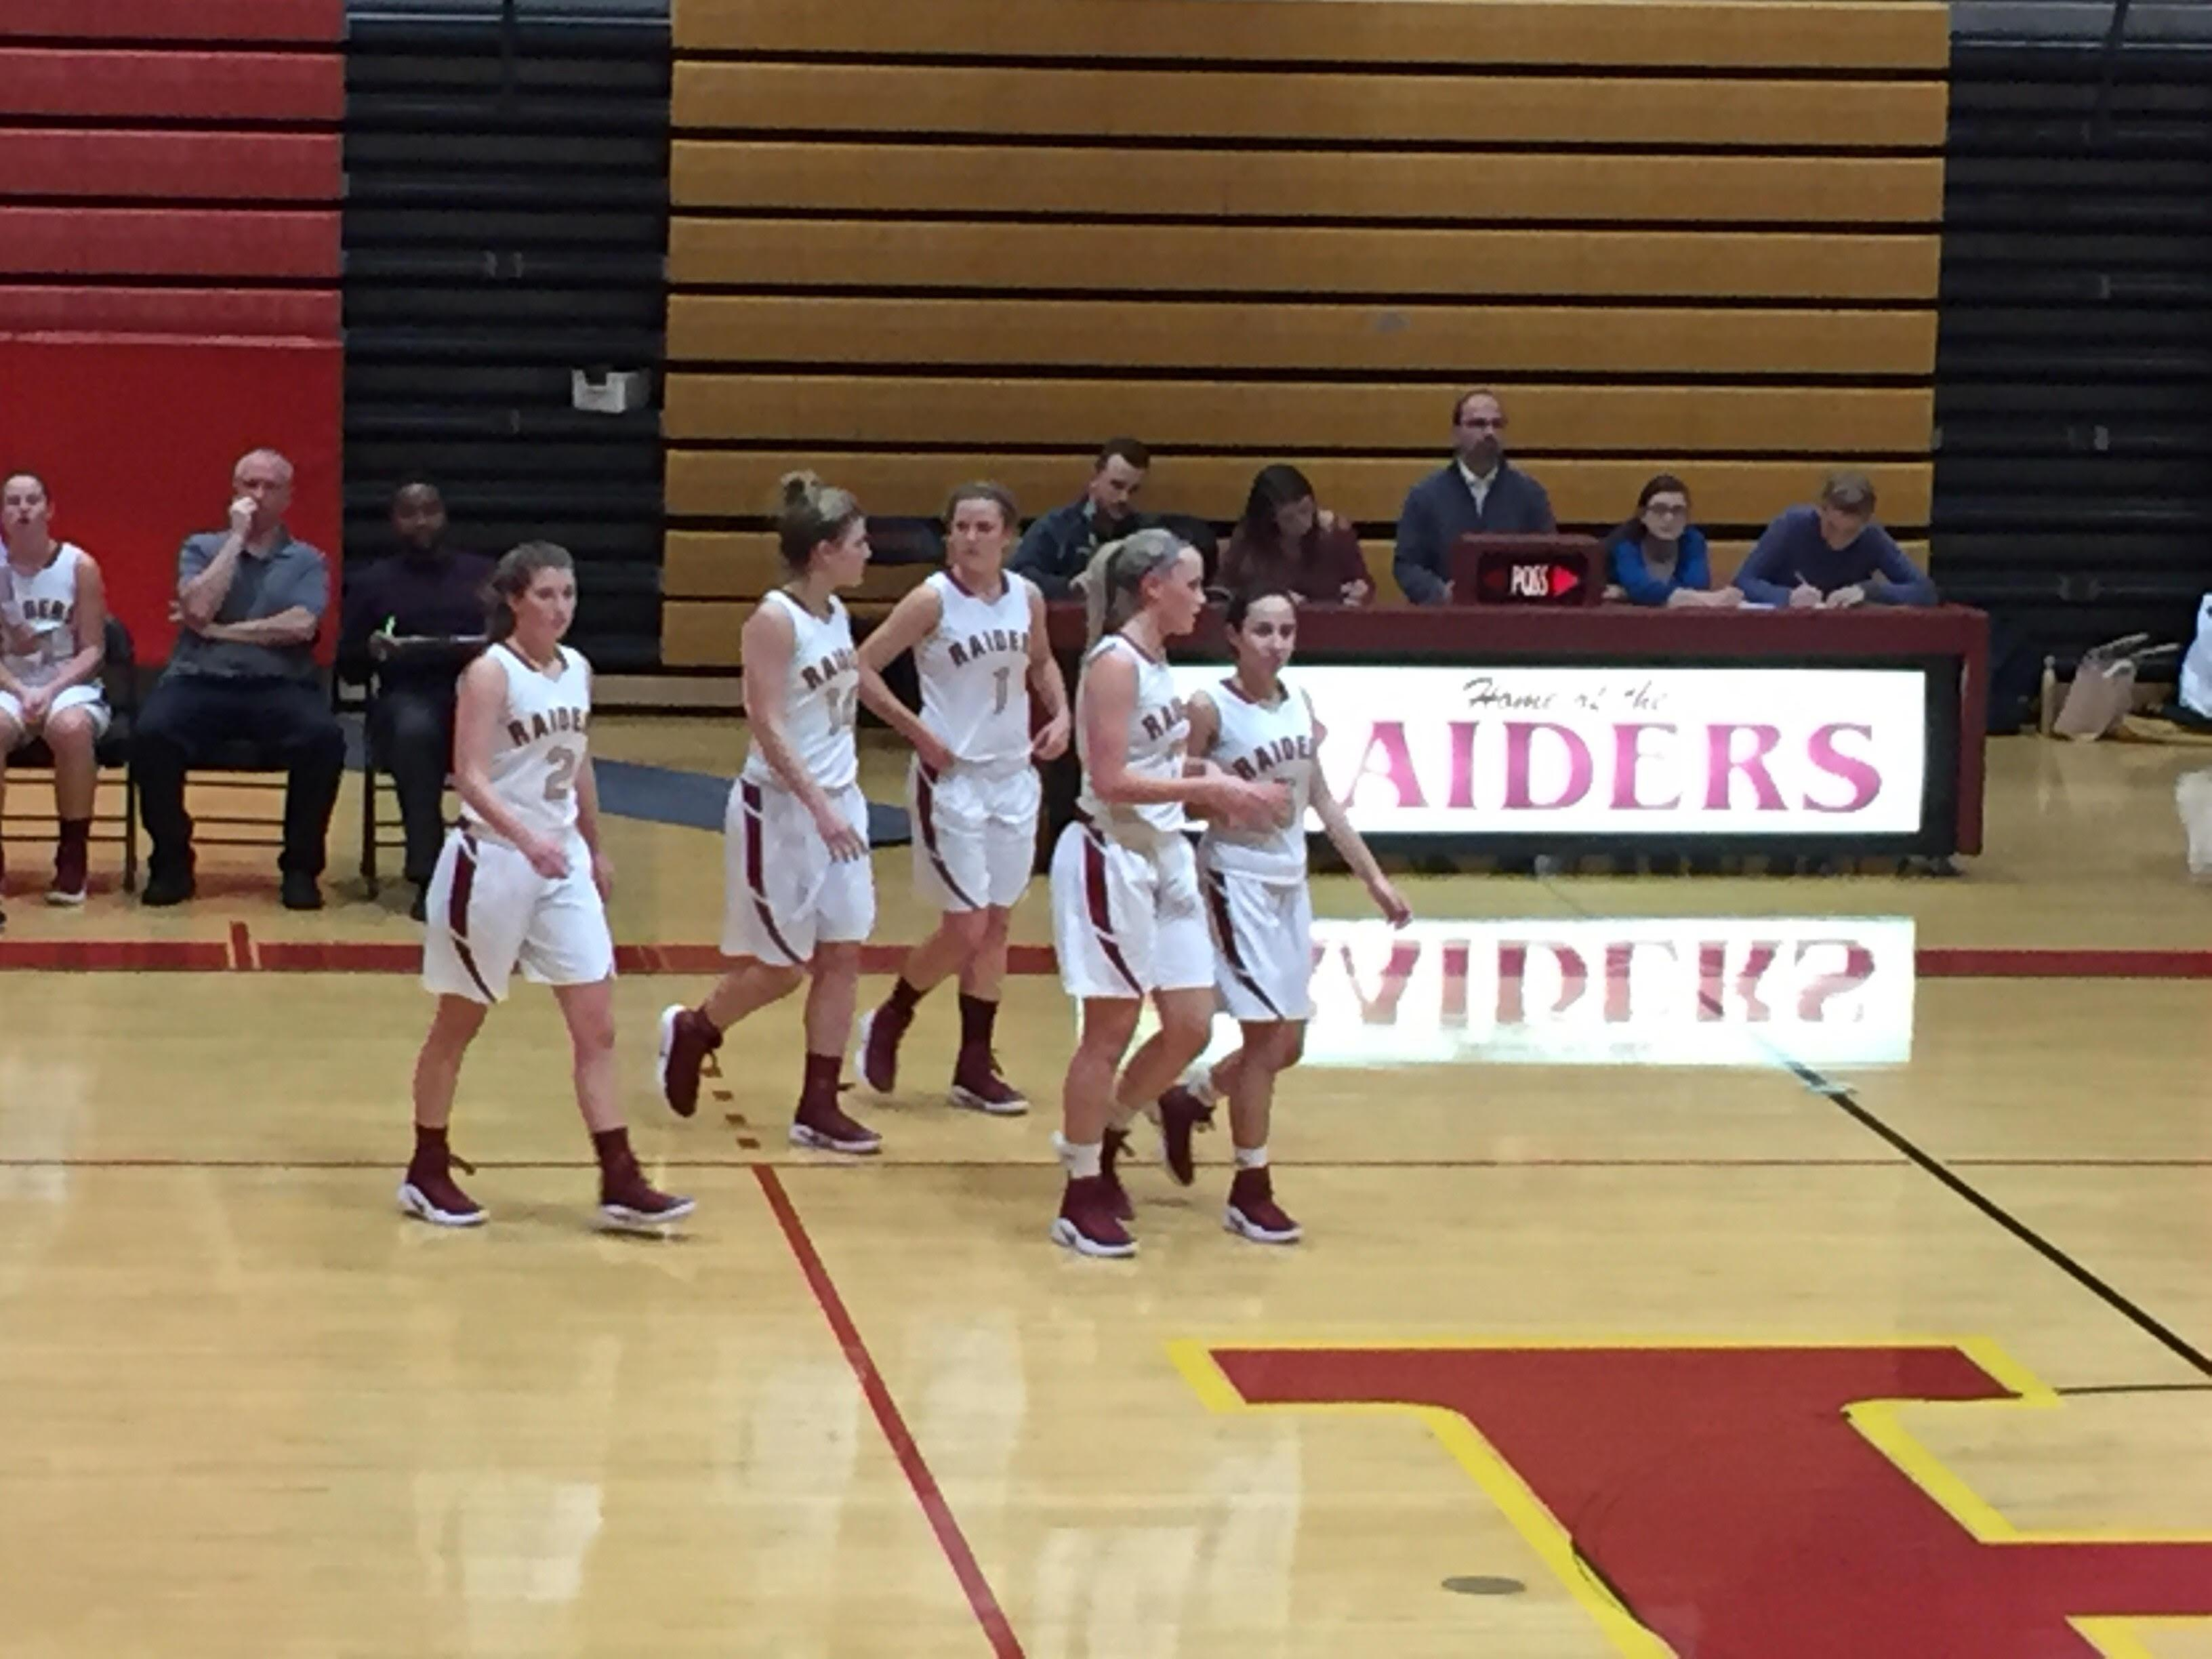 The Lady Raiders took to the court against North Hunterdon earlier this year. The Raiders lost a close 47-43 game to the Lions.